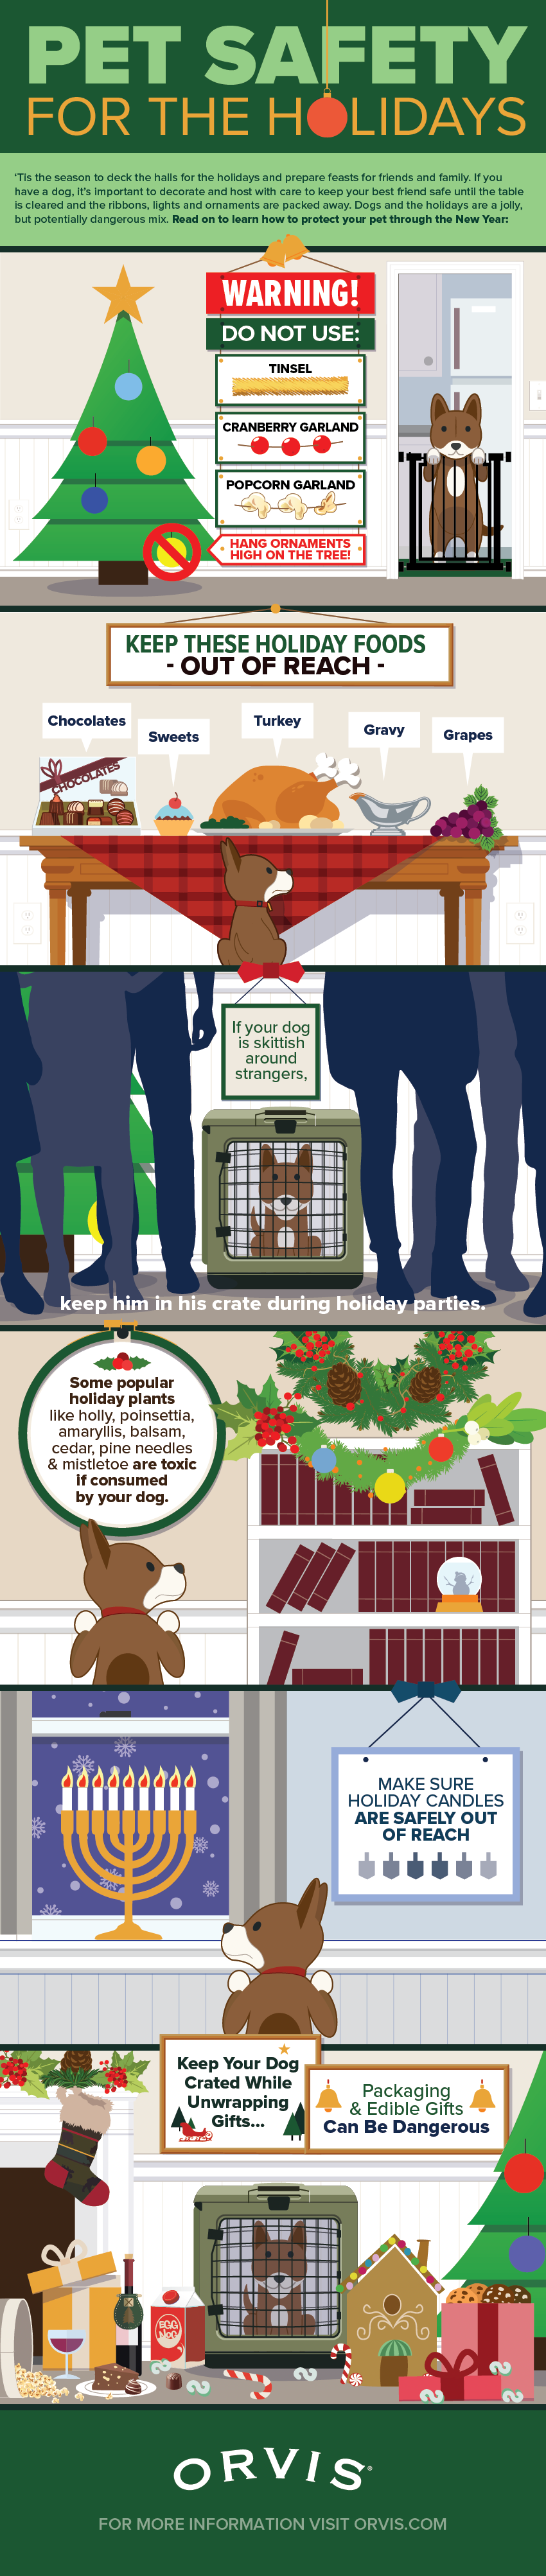 orvis-pet-safety-for-the-holidays